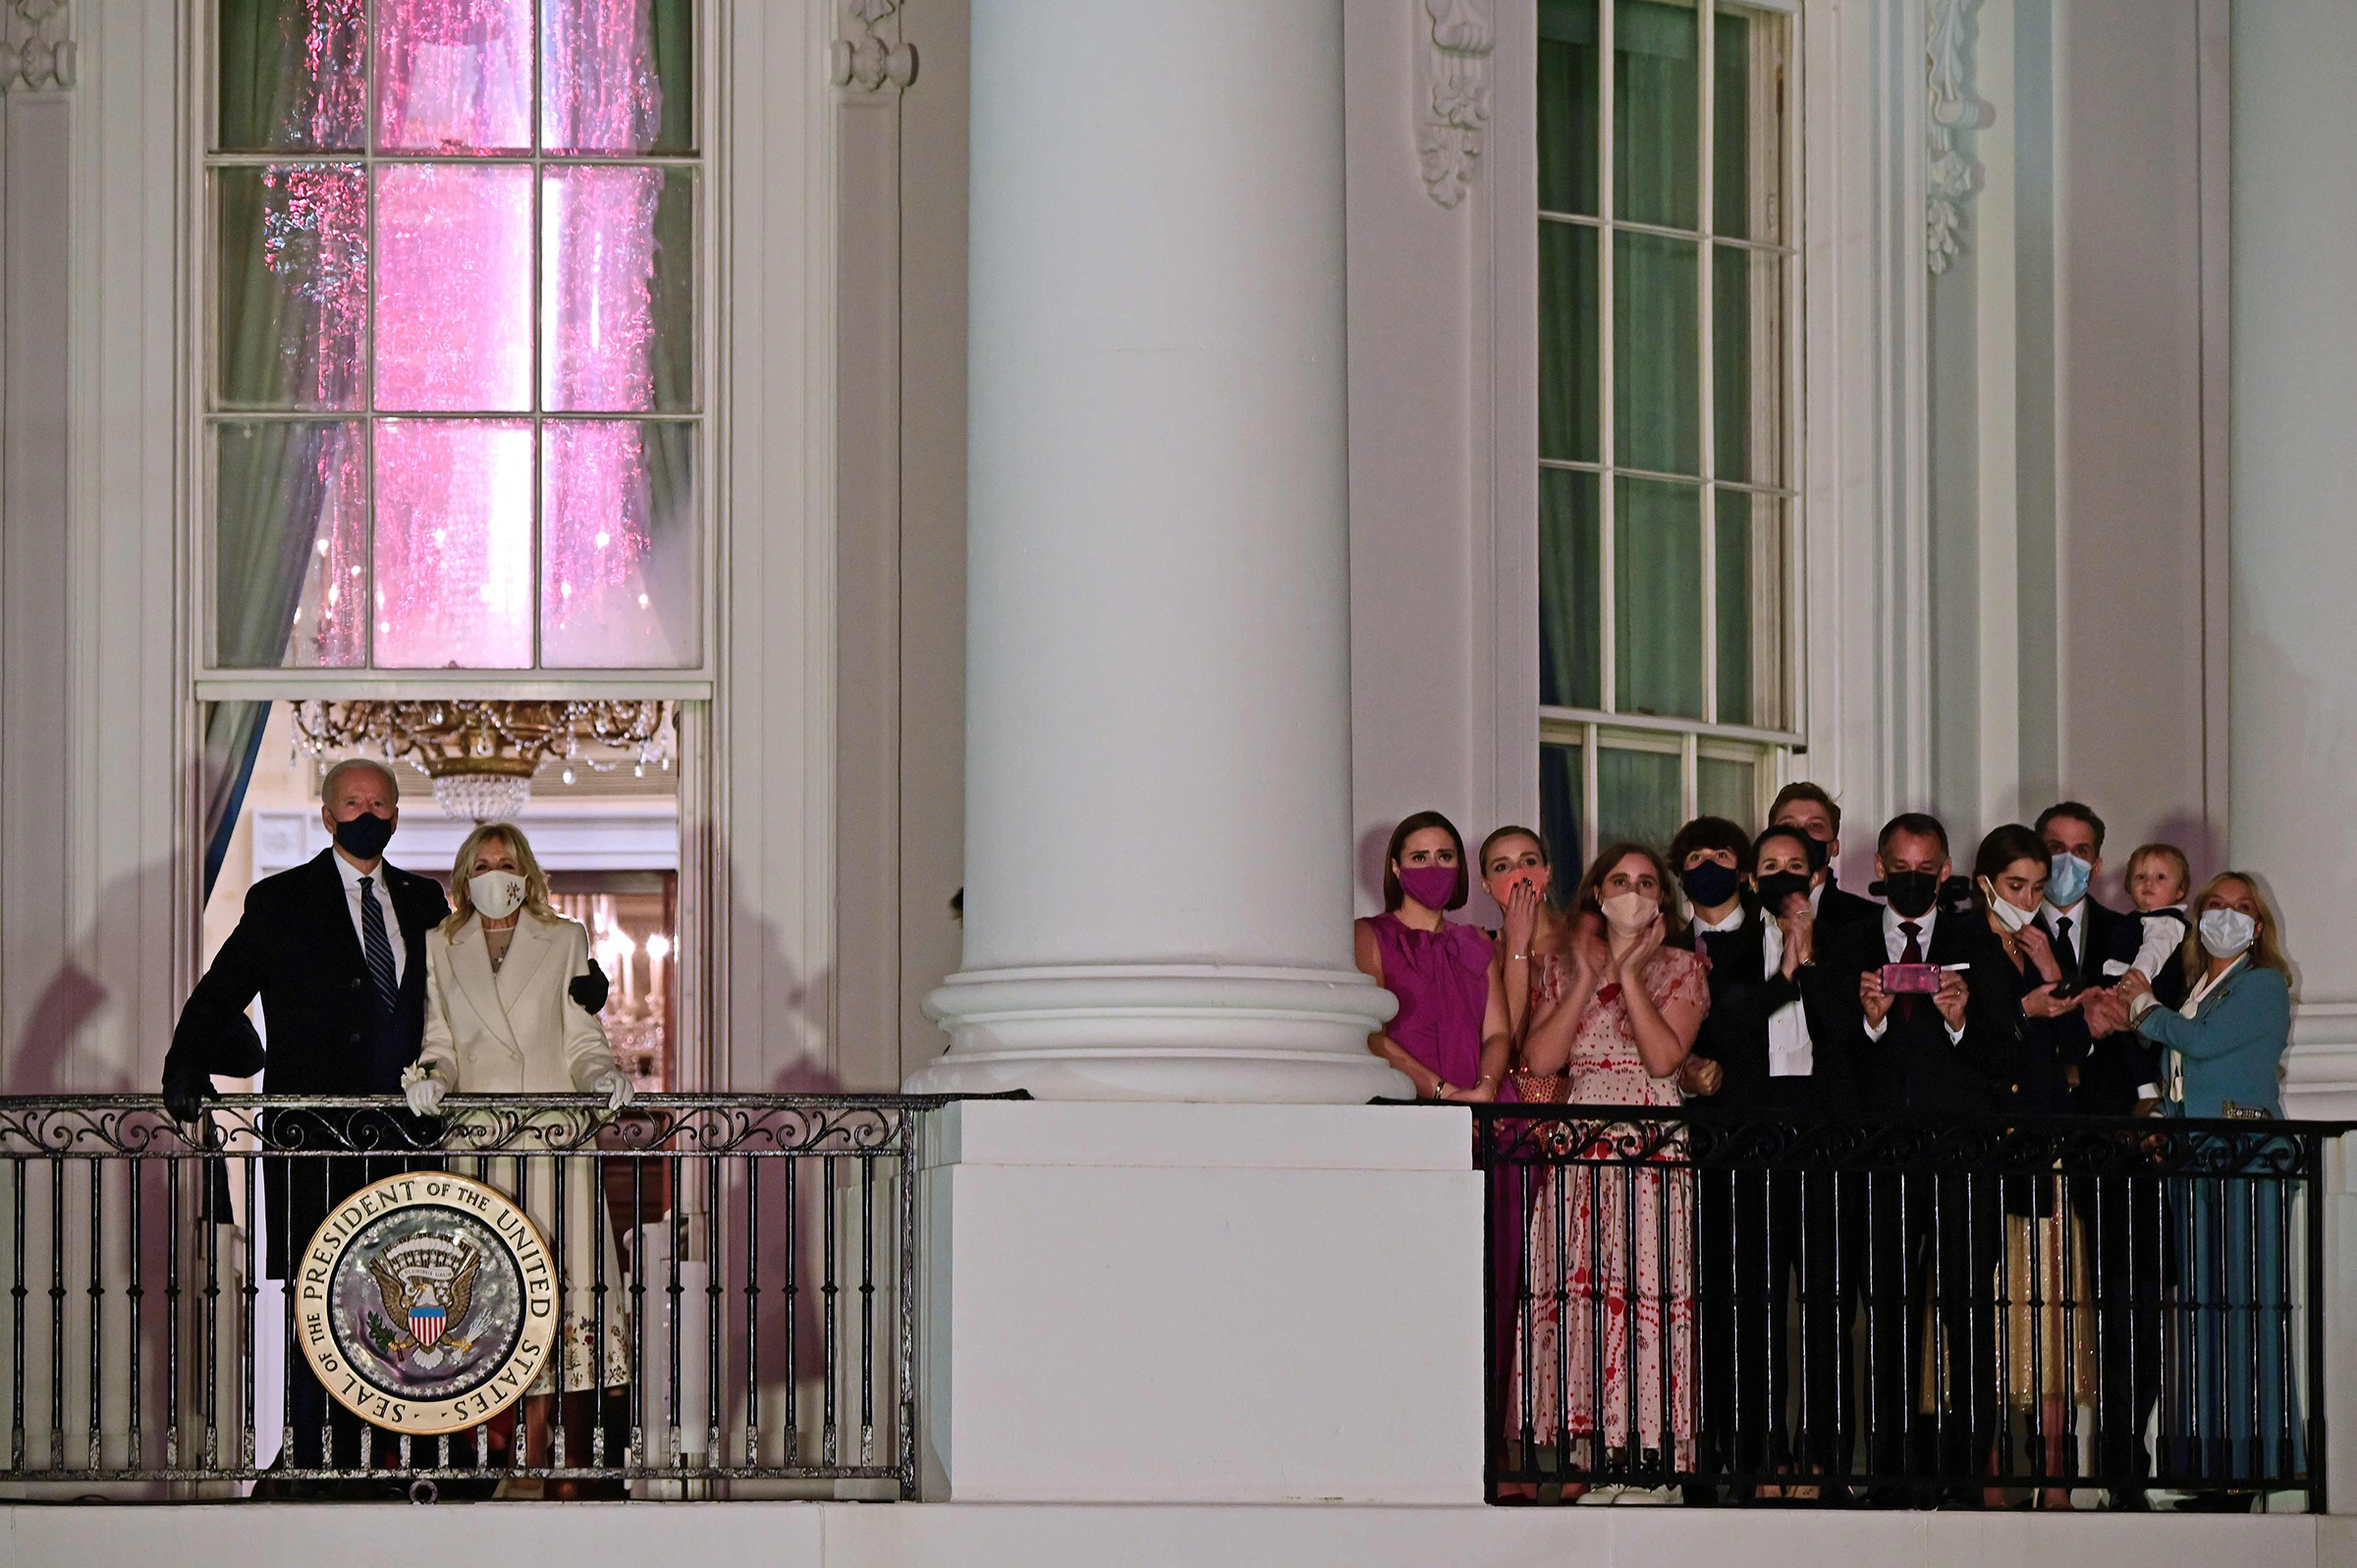 President Joe Biden, First Lady Dr. Jill Biden and family watch fireworks from the Blue Room Balcony of the White House.